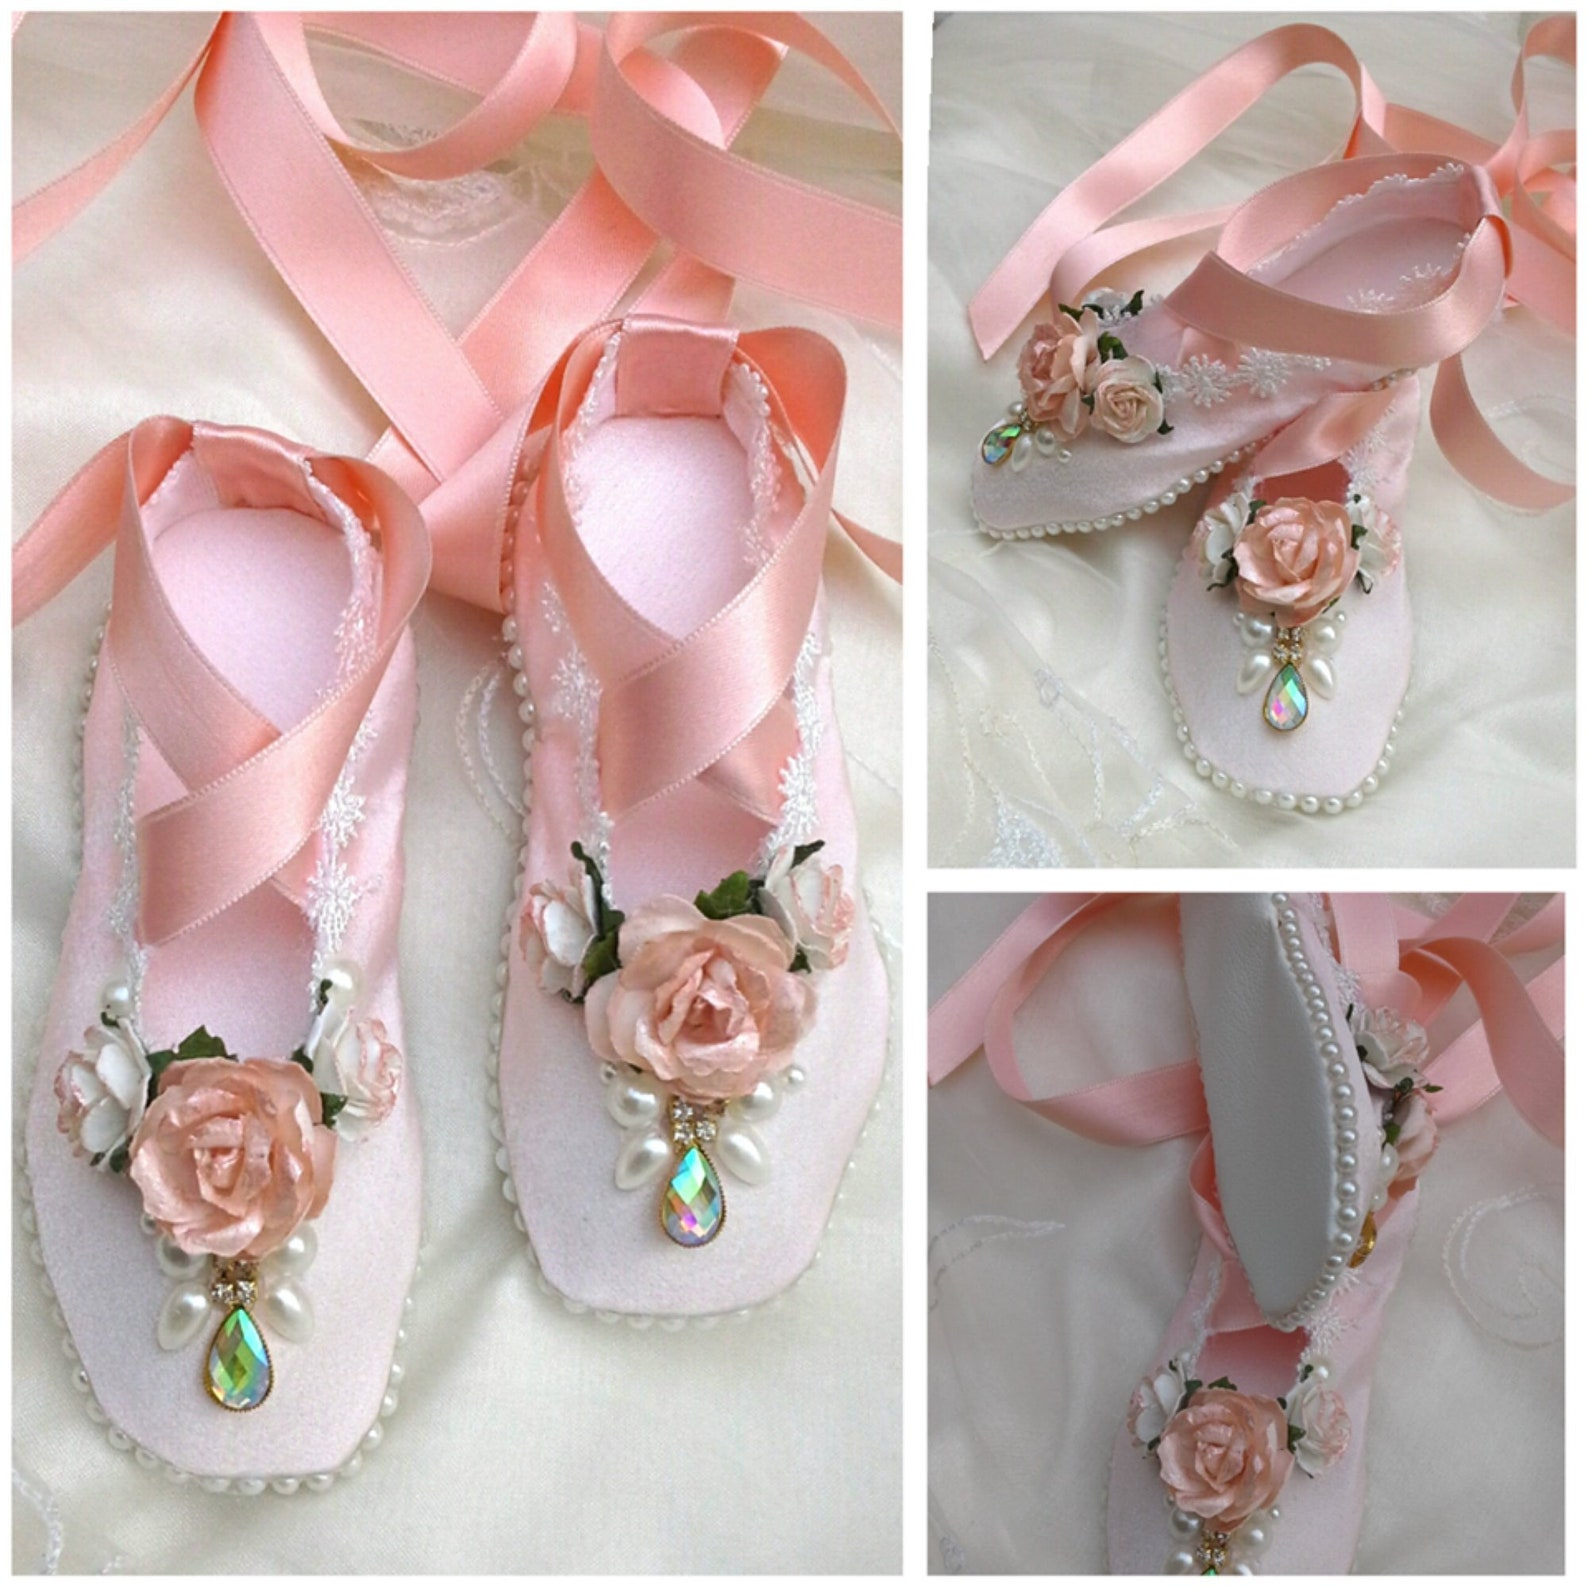 decorated pointe shoes, ballet shoes, decorated ballet slippers, decorative ballet shoes, shabby chic, ballet dancing shoes,gift